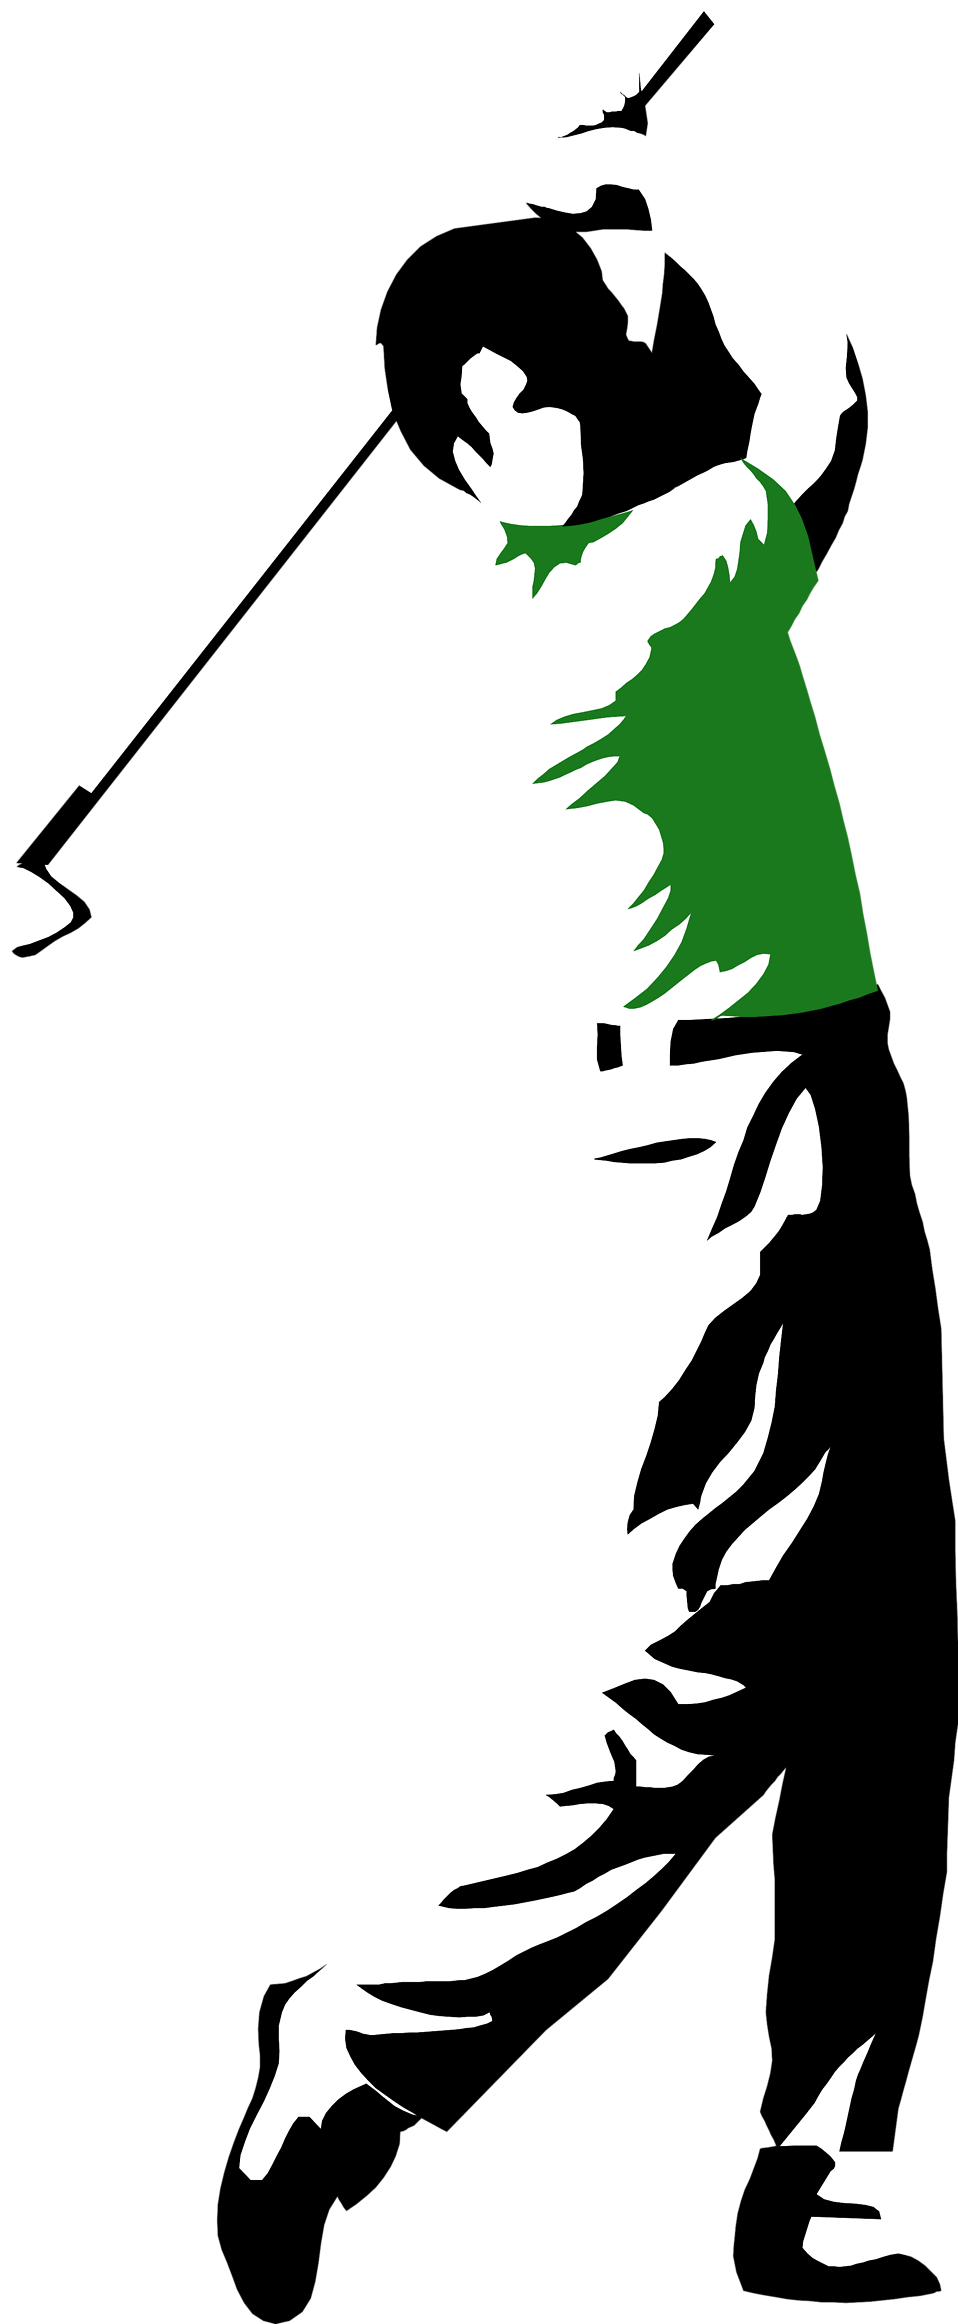 Golf Course clipart golfer Images Club Free Clipart Club